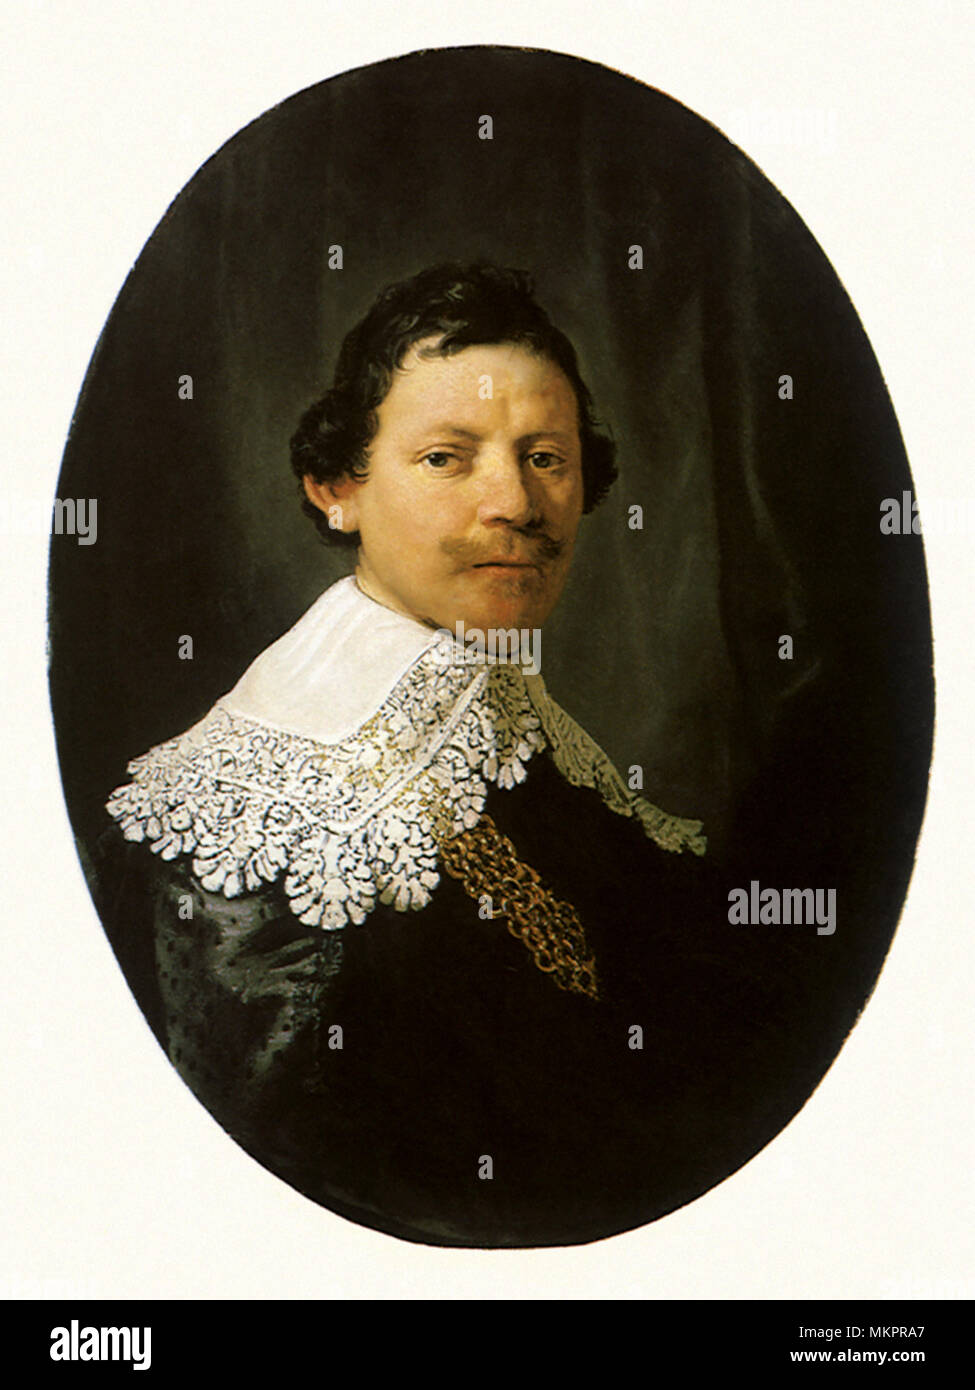 Philips Lucasz, Councillor of the Dutch East India Company - Stock Image